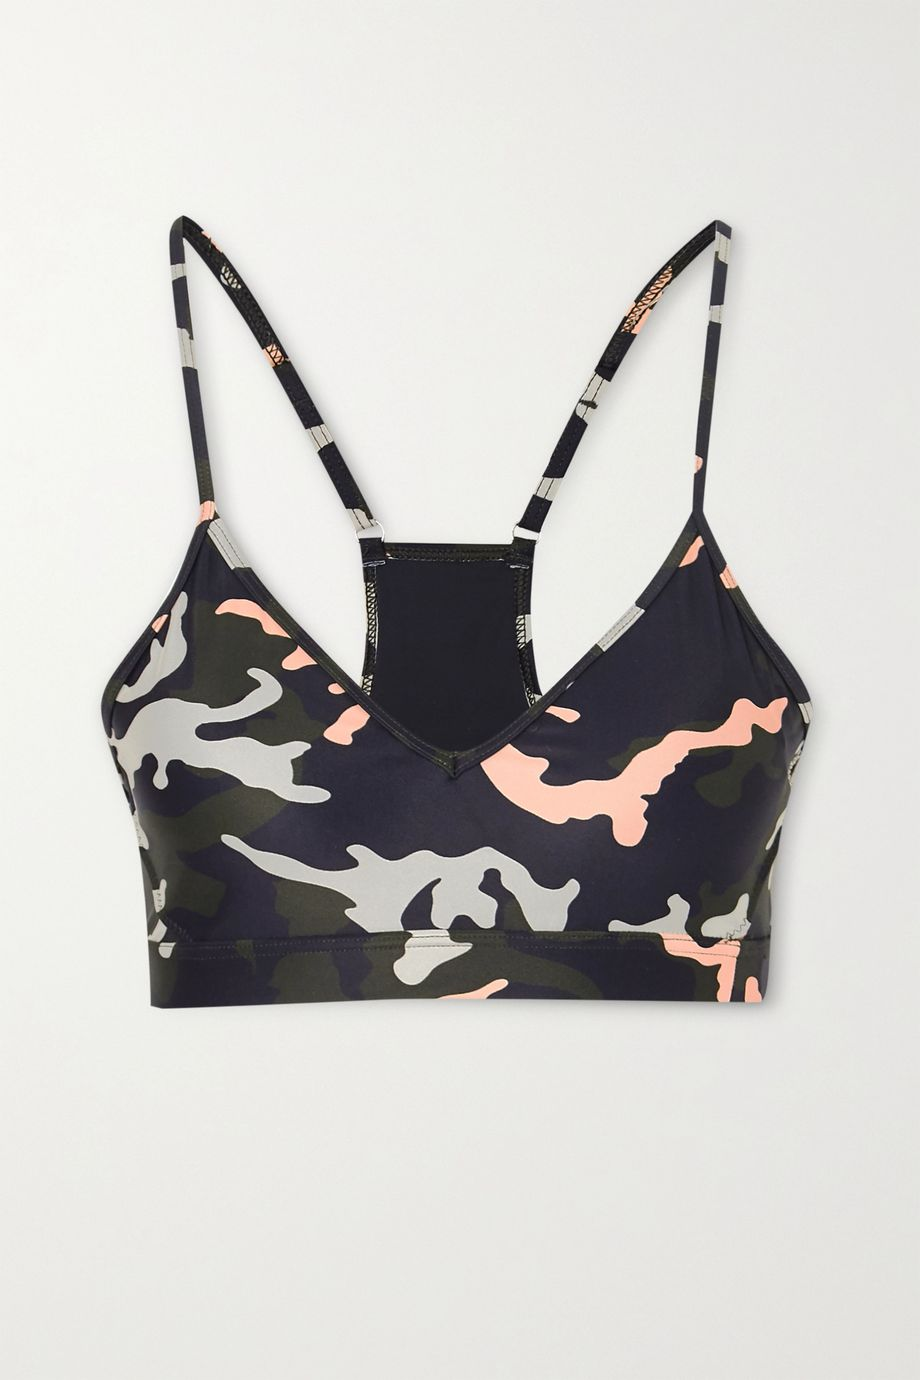 The Upside Andie camouflage-print stretch sports bra